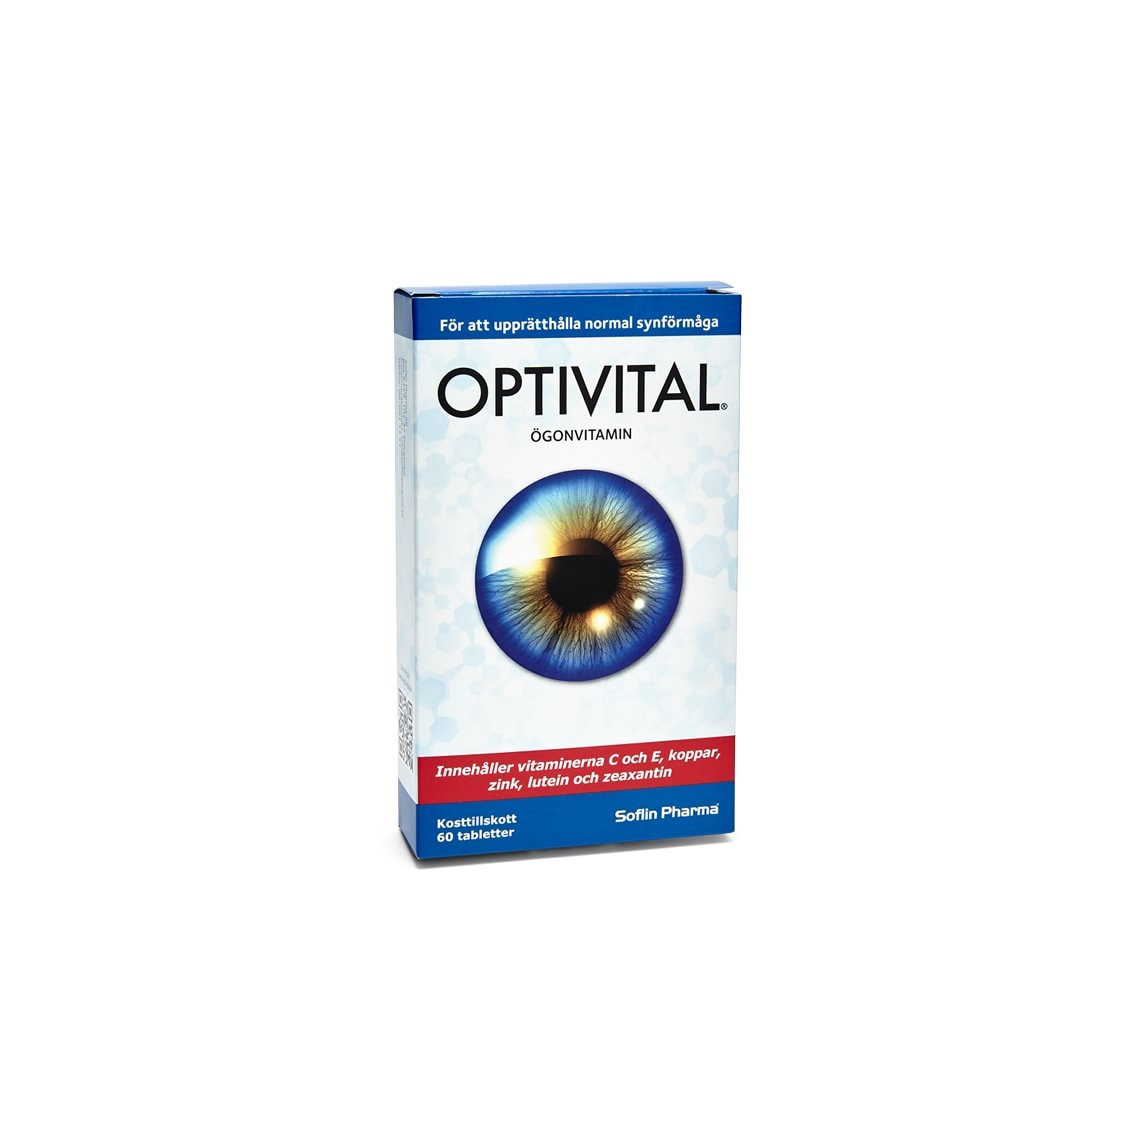 Optivital  Ögonvitamin 60 tabletter